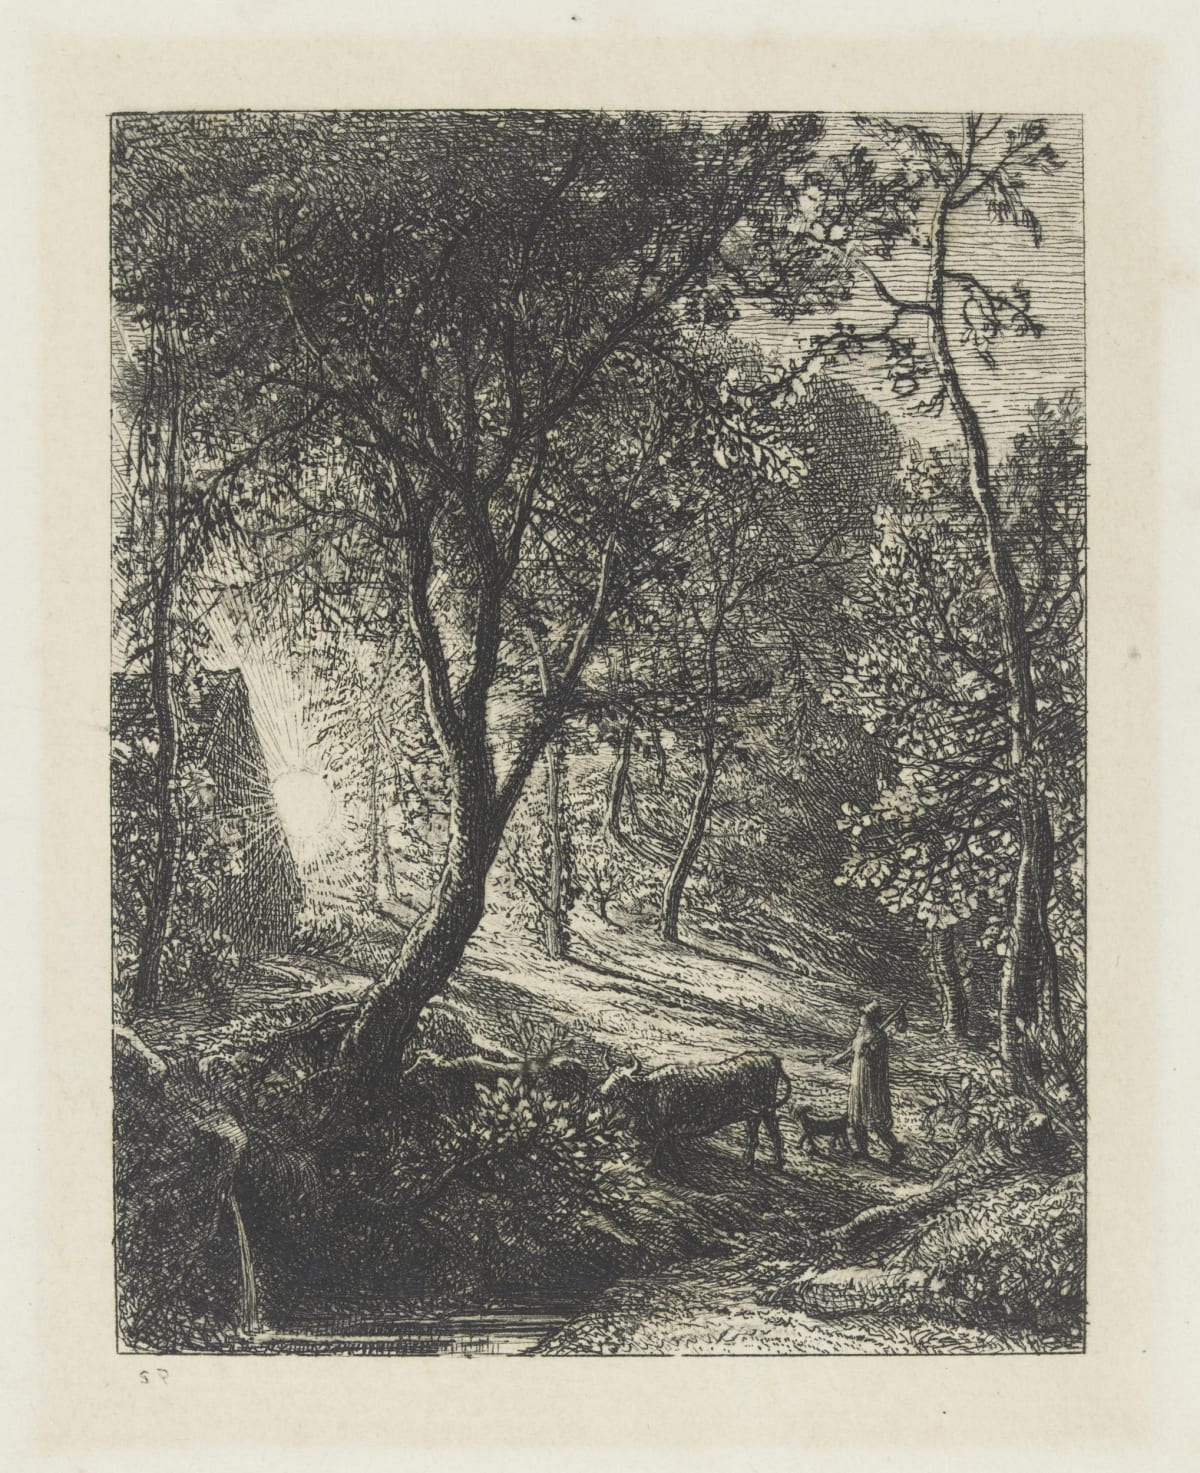 Samuel Palmer, The Herdsman's Cottage, 1850 Etching © Royal Academy of Arts